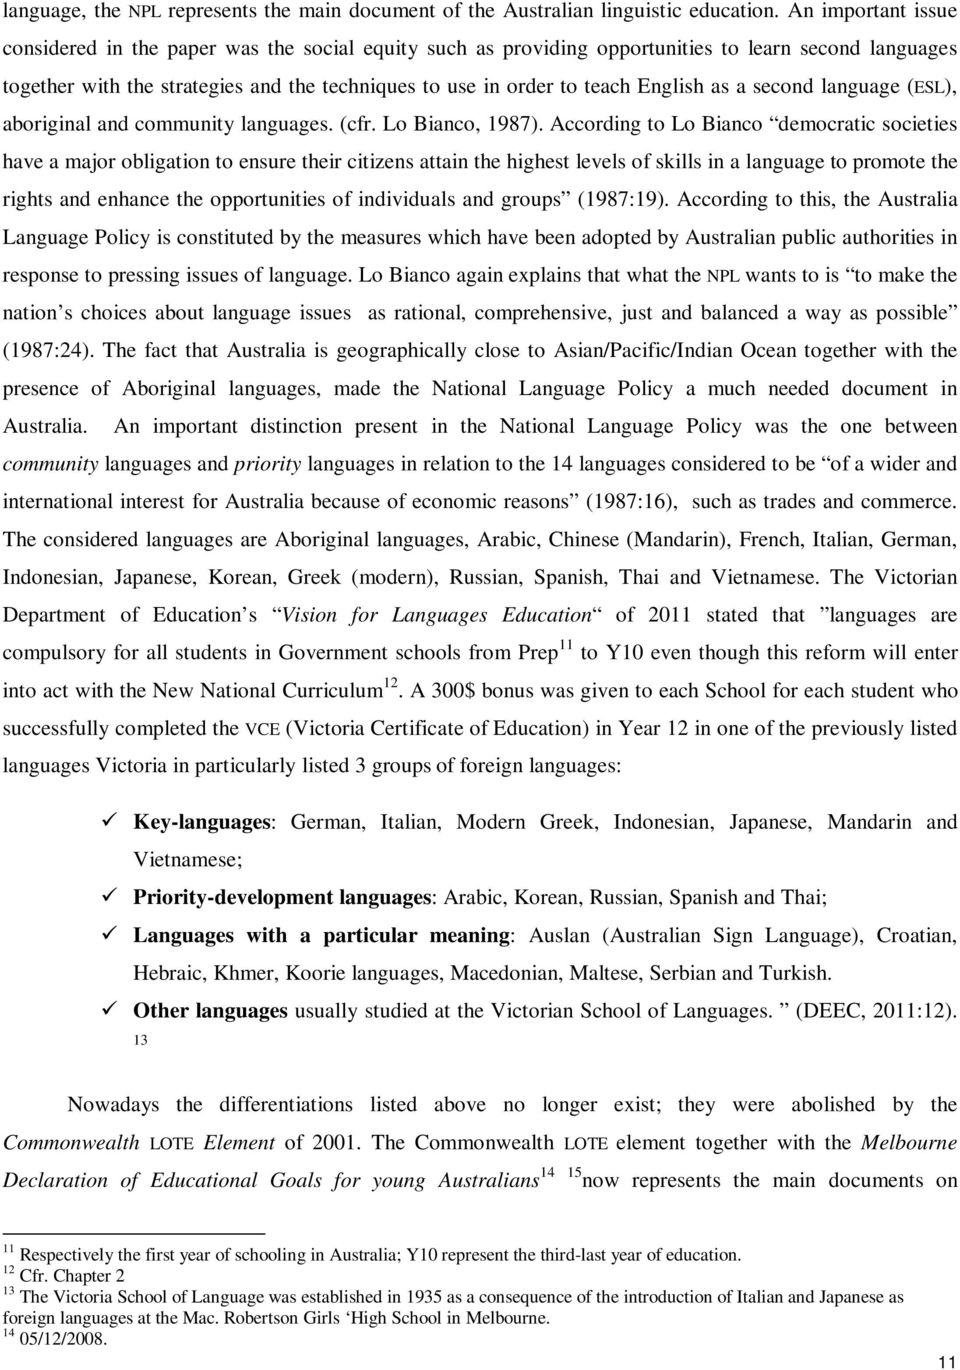 English as a second language (ESL), aboriginal and community languages. (cfr. Lo Bianco, 1987).